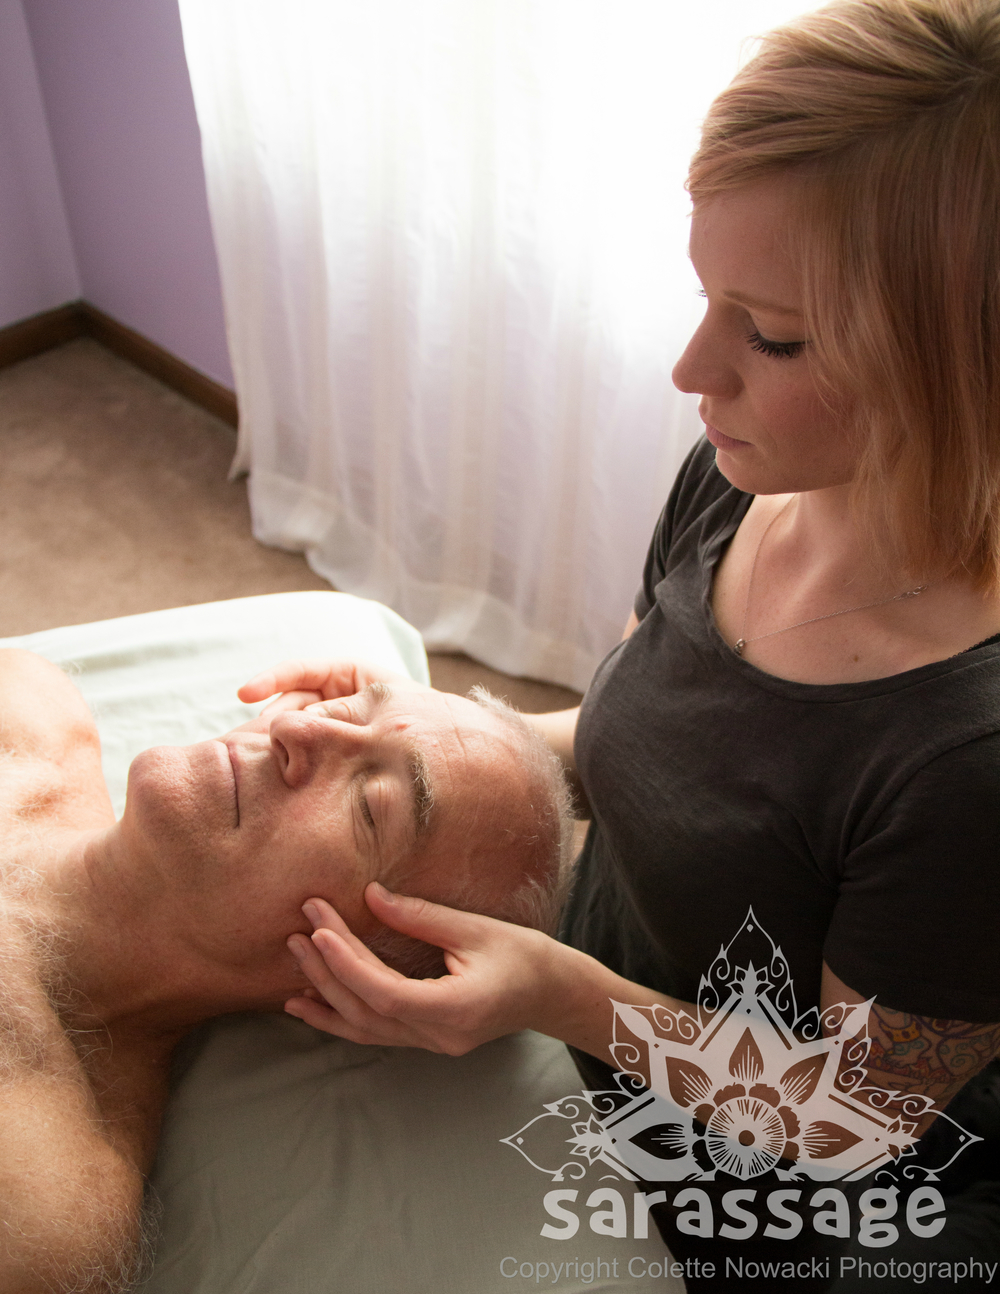 Craniosacral Work    30/$40 | 60/$70 | 90/$100 | 120/$140   A gentle form of bodywork that uses subtle touch and connects with the nervous system to help release deeply-held tension and restore function throughout the body. Especially helpful for those suffering from headaches, migraines, insomnia, anxiety and depression.